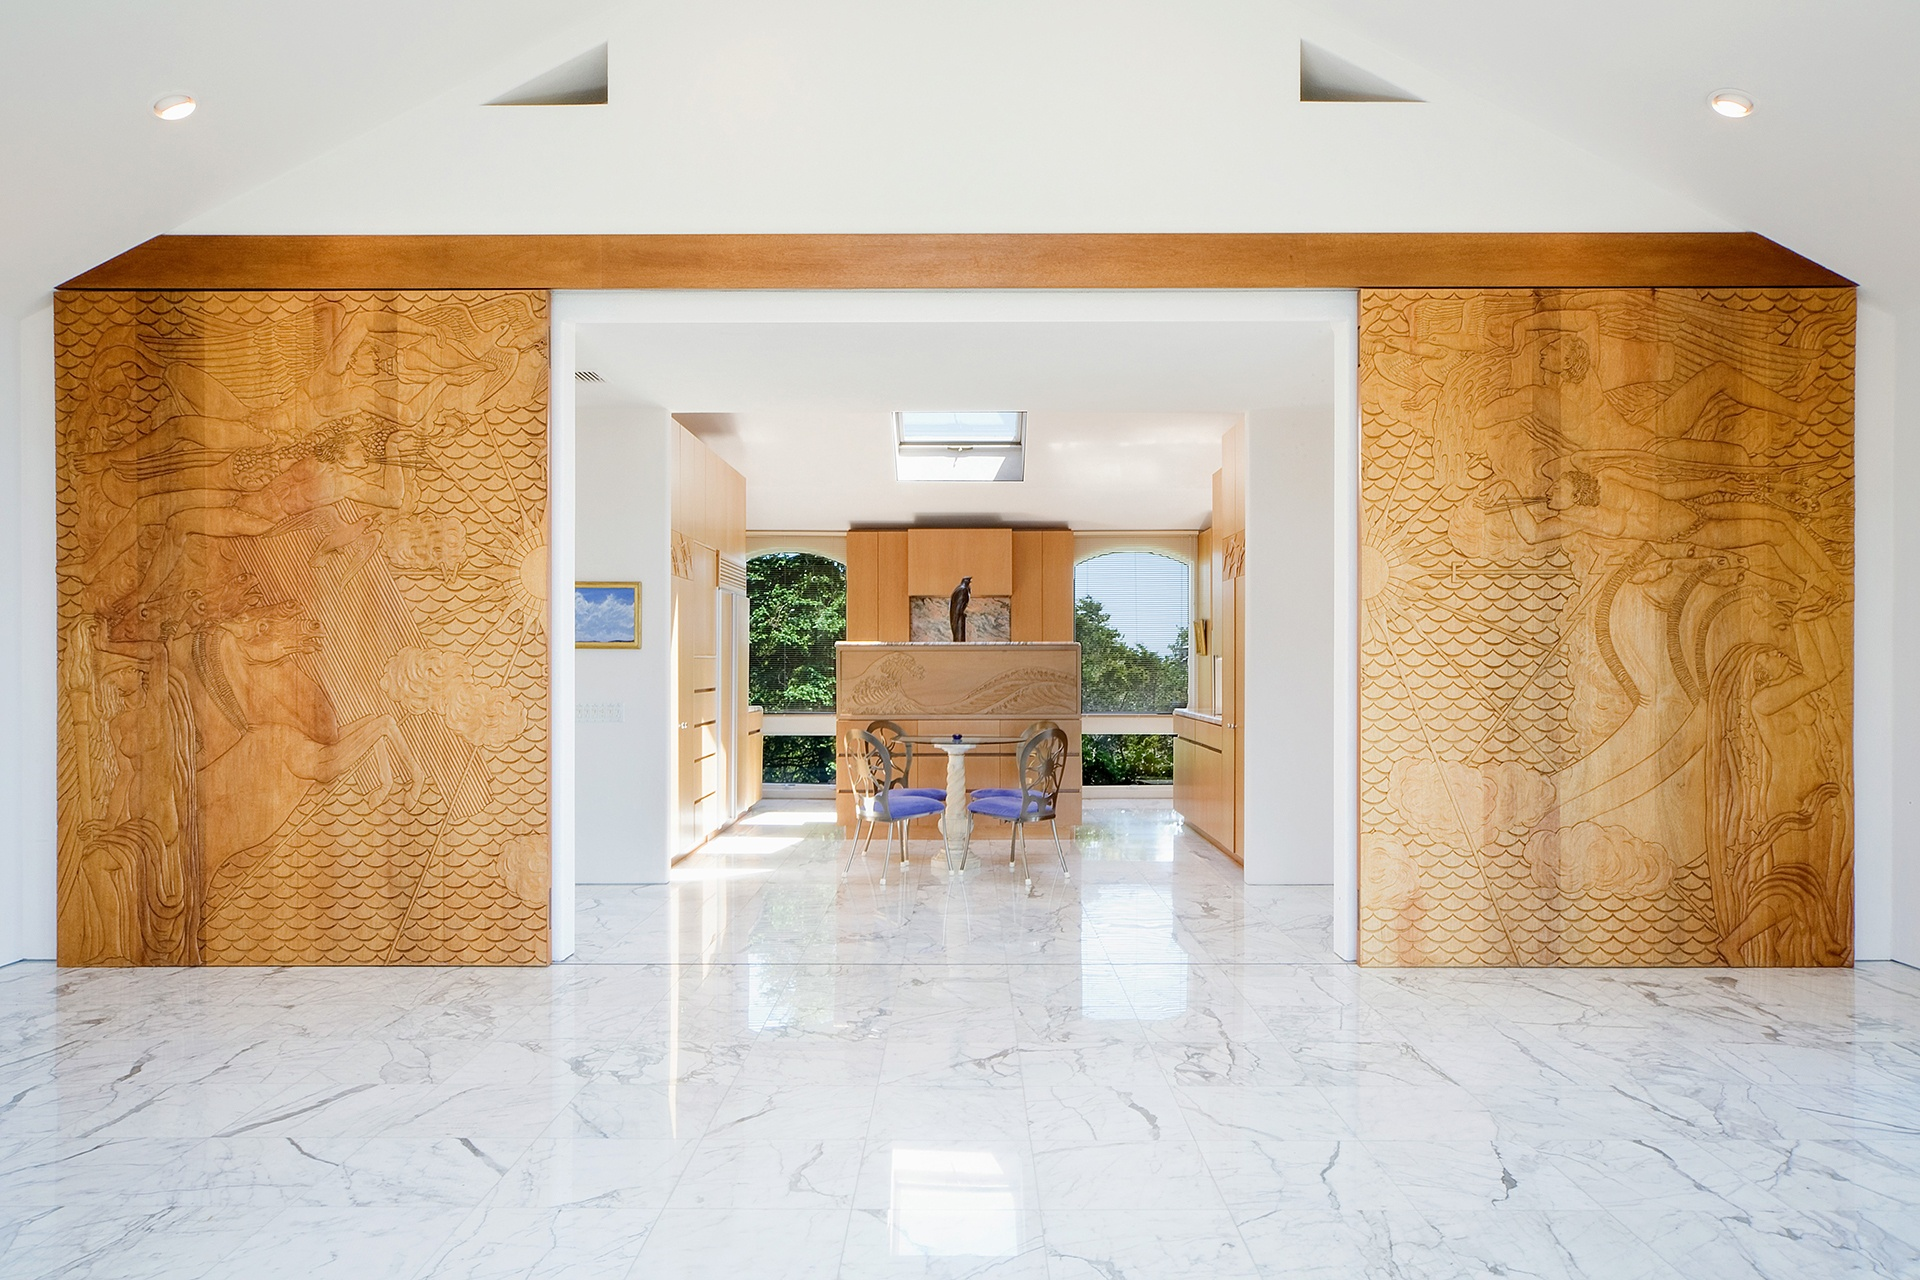 Gleaming interiors of wood, glass, and marble are a hallmark of this Montauk masterwork.